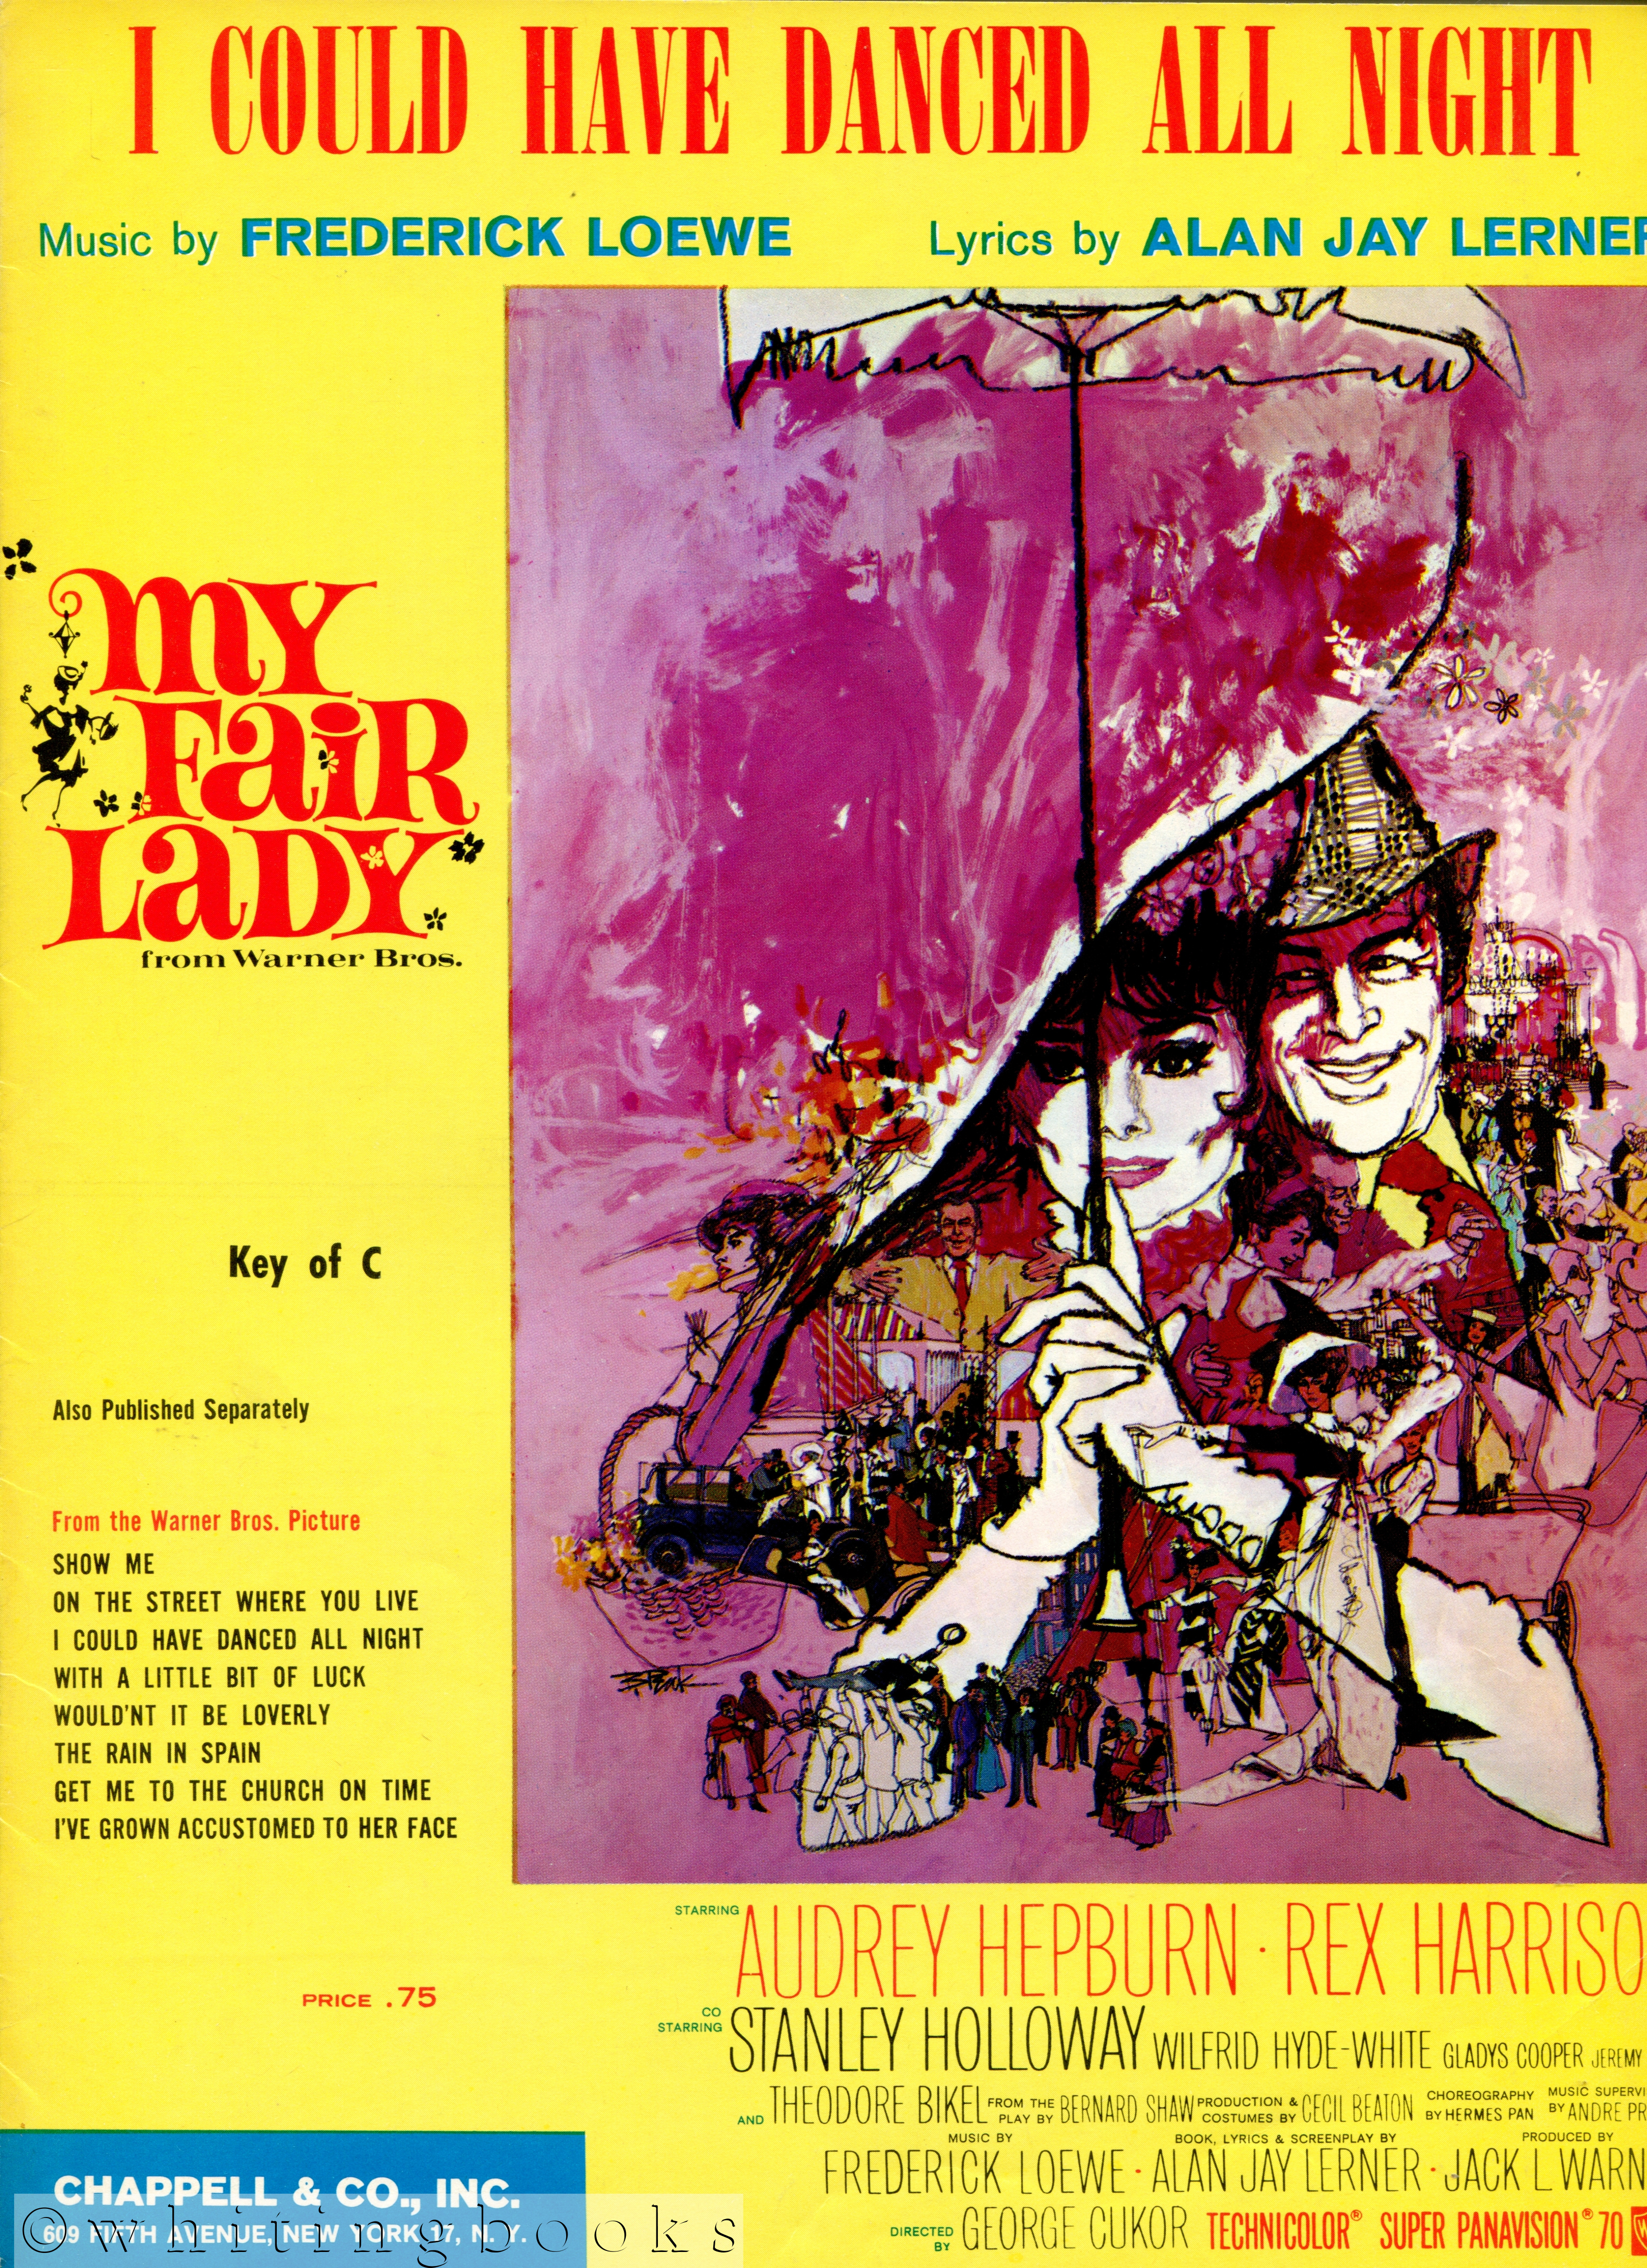 Image for I Could Have Danced All Night - Sheet Music, Key of C, from the Warner Bros. Movie, My Fair Lady